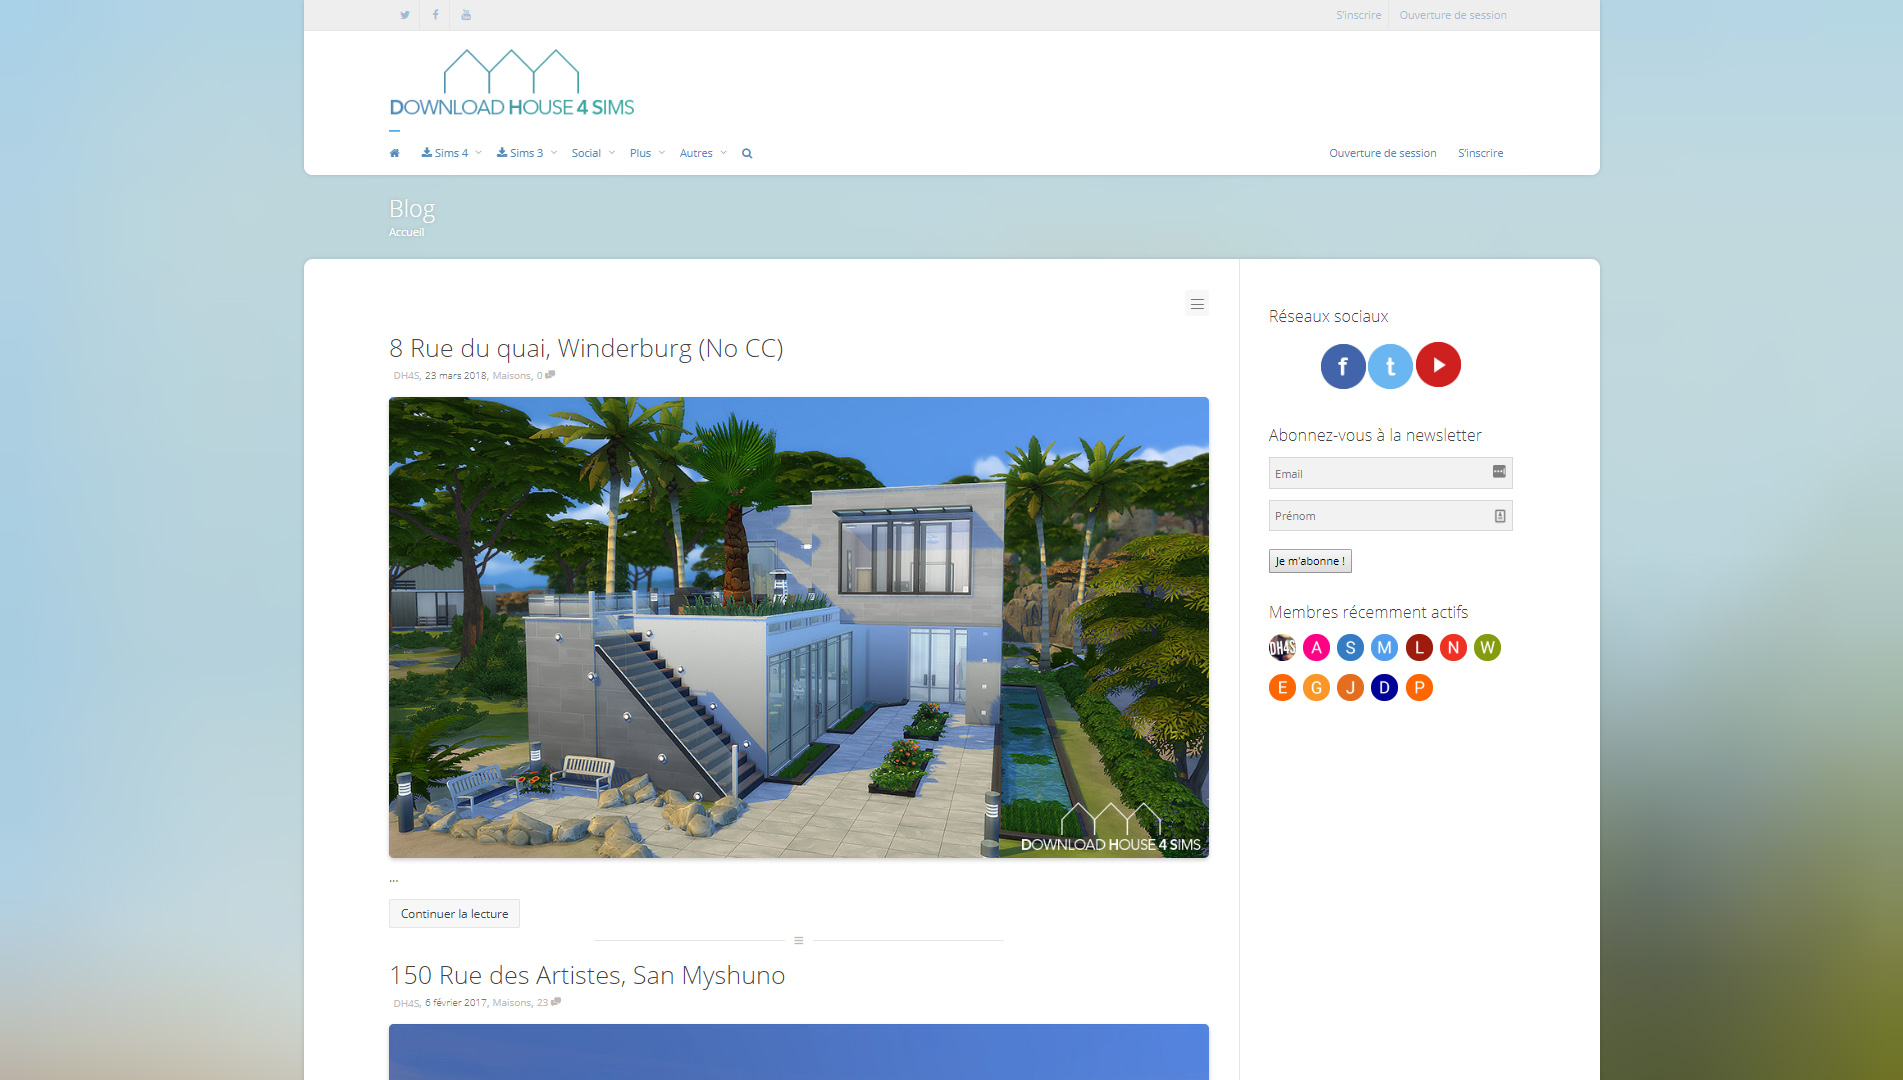 Download House 4 Sims